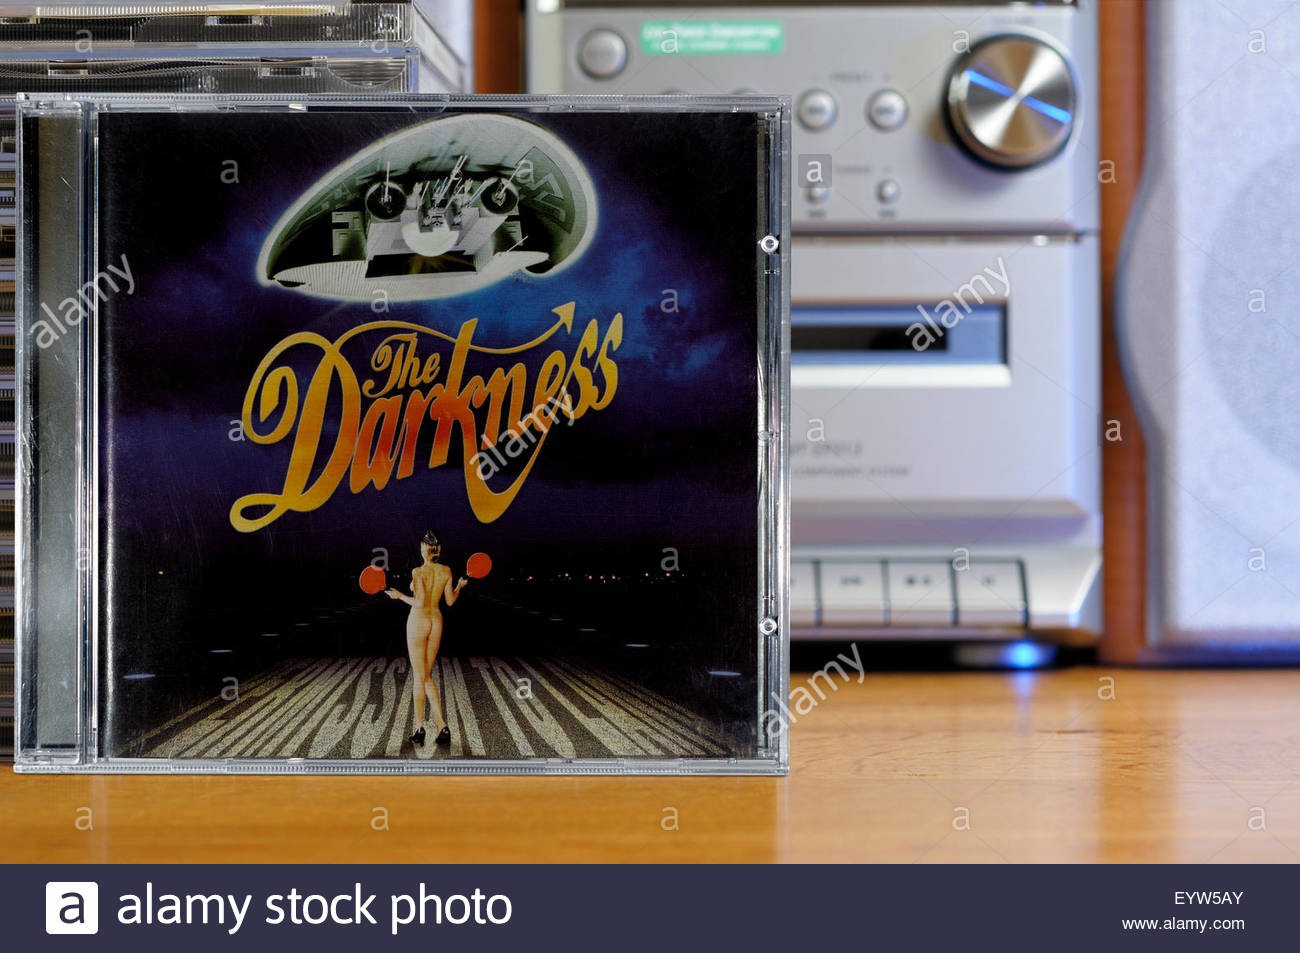 The Darkness 2003 debut album Permission to Land, album, piled music CD cases, England - Stock Image